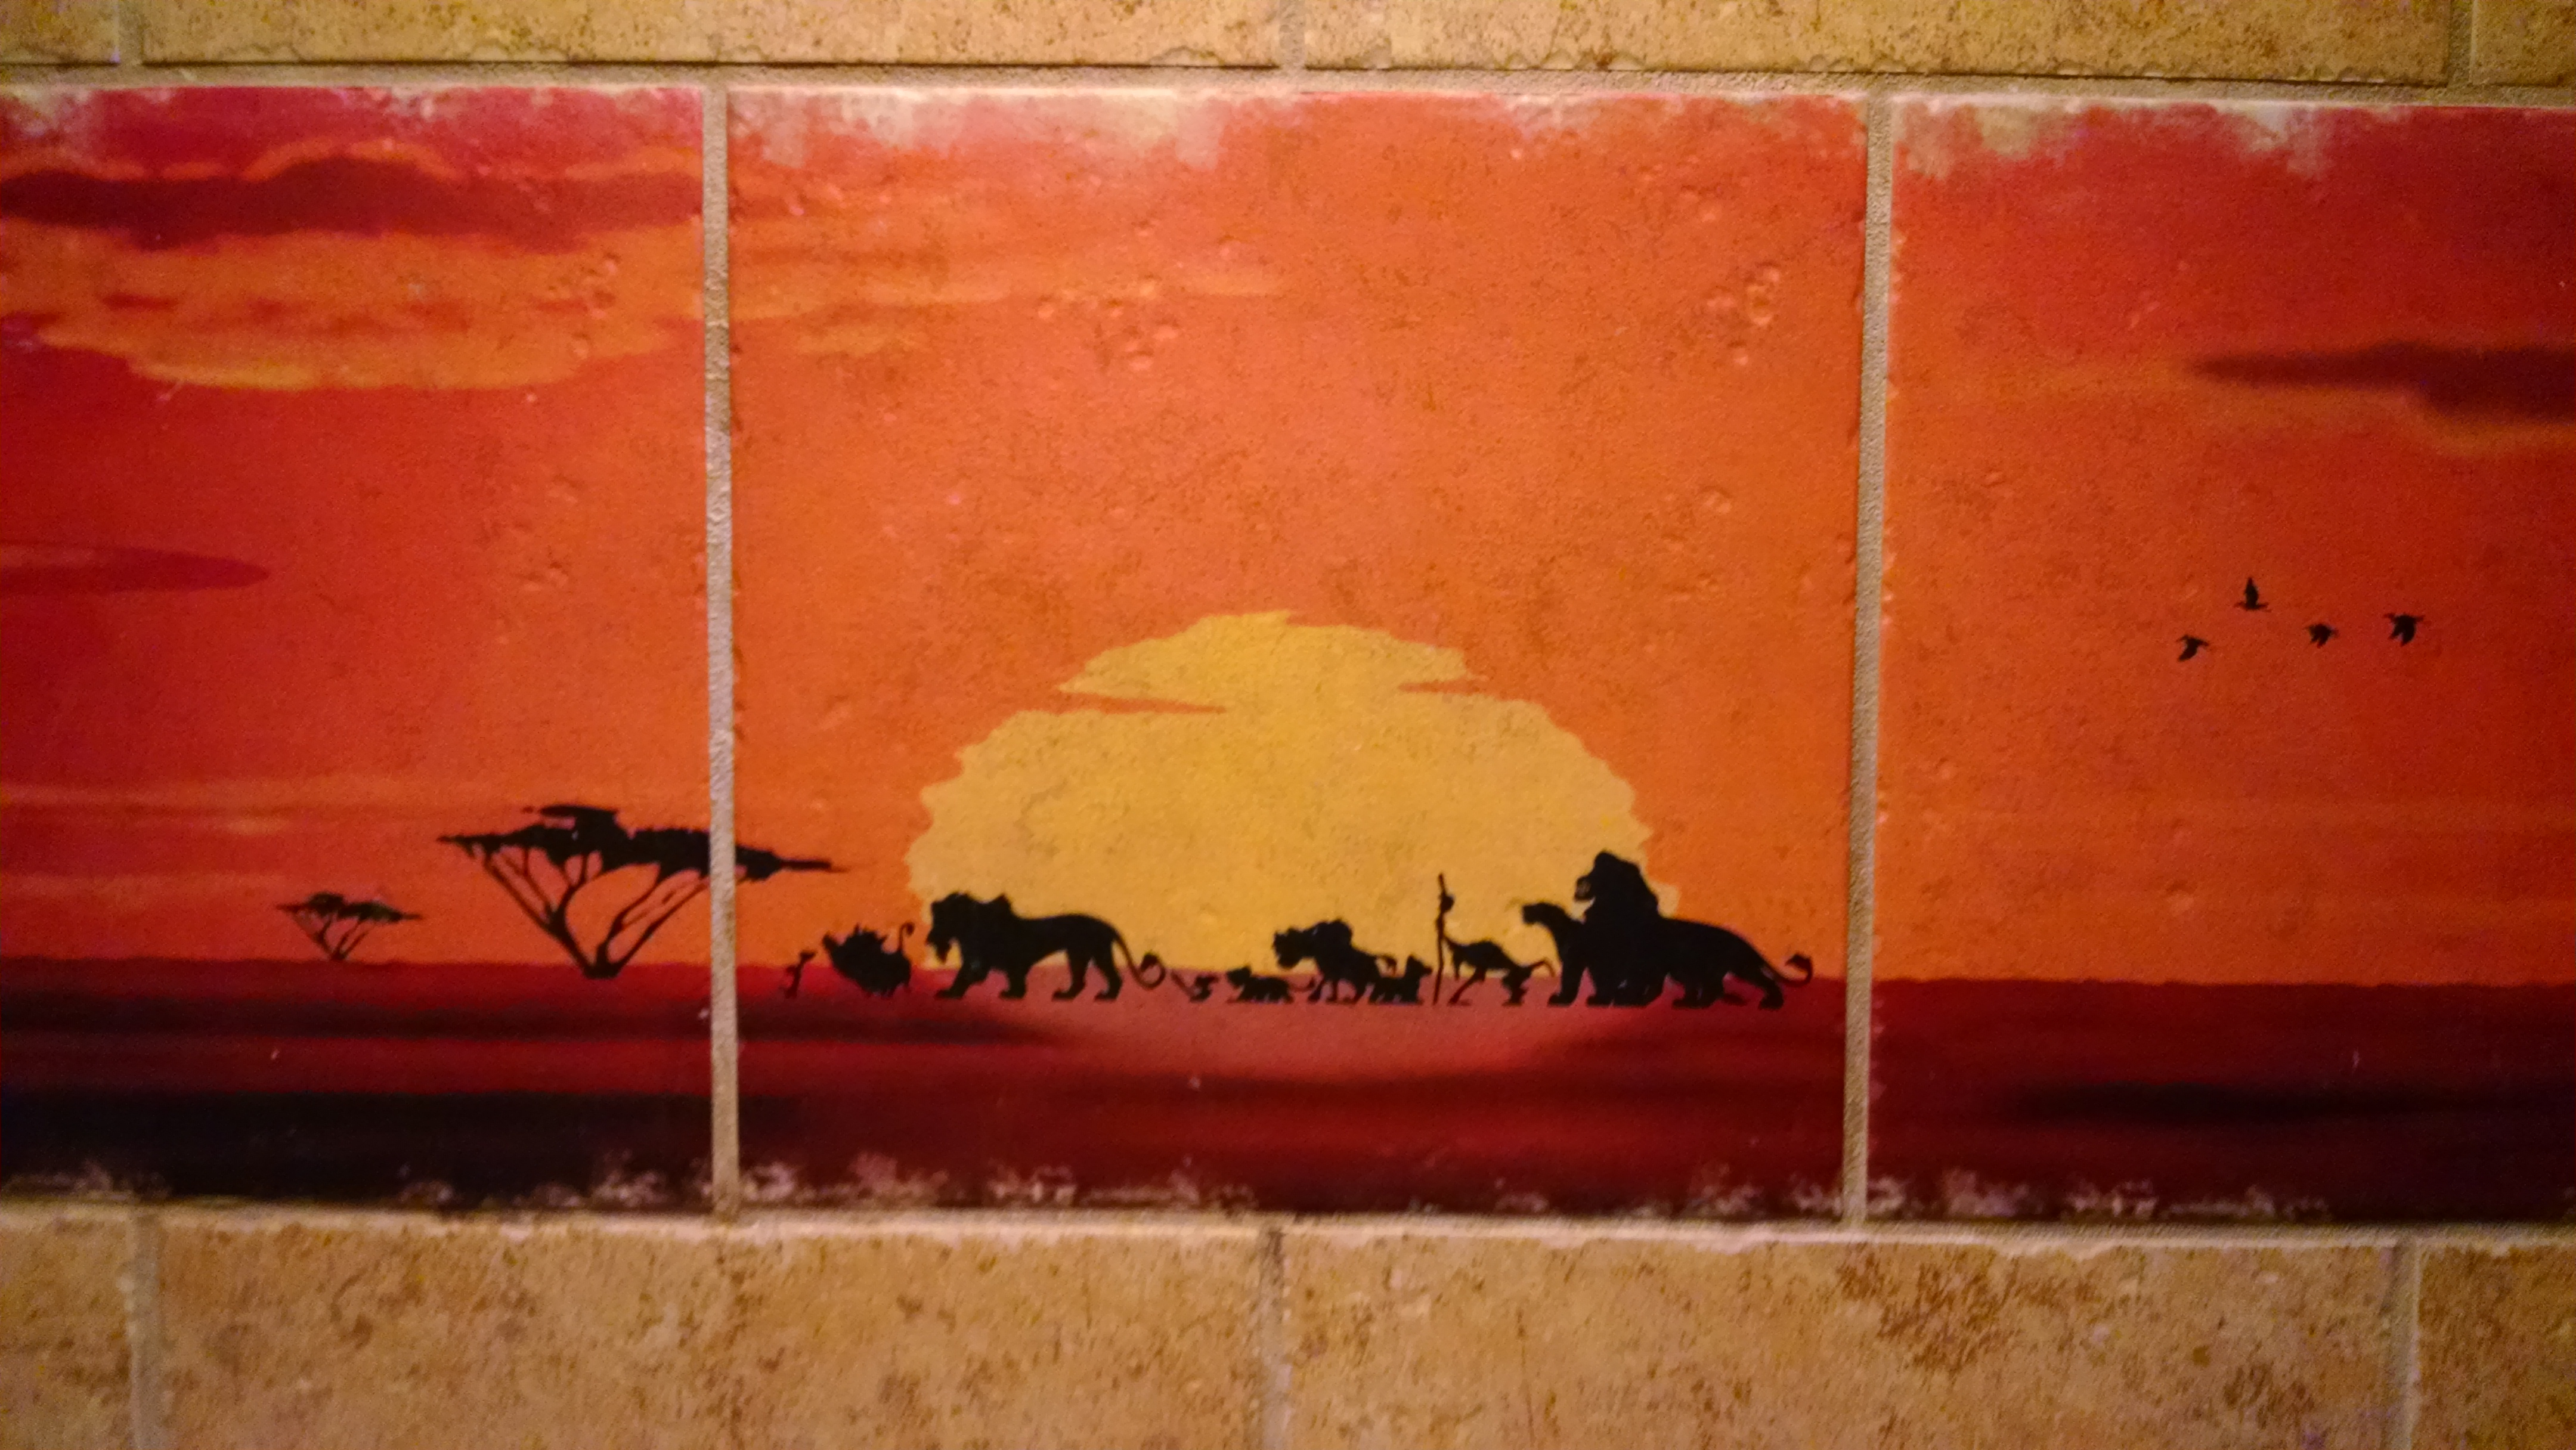 Lion King Tiles - Animal Kingdom DVC